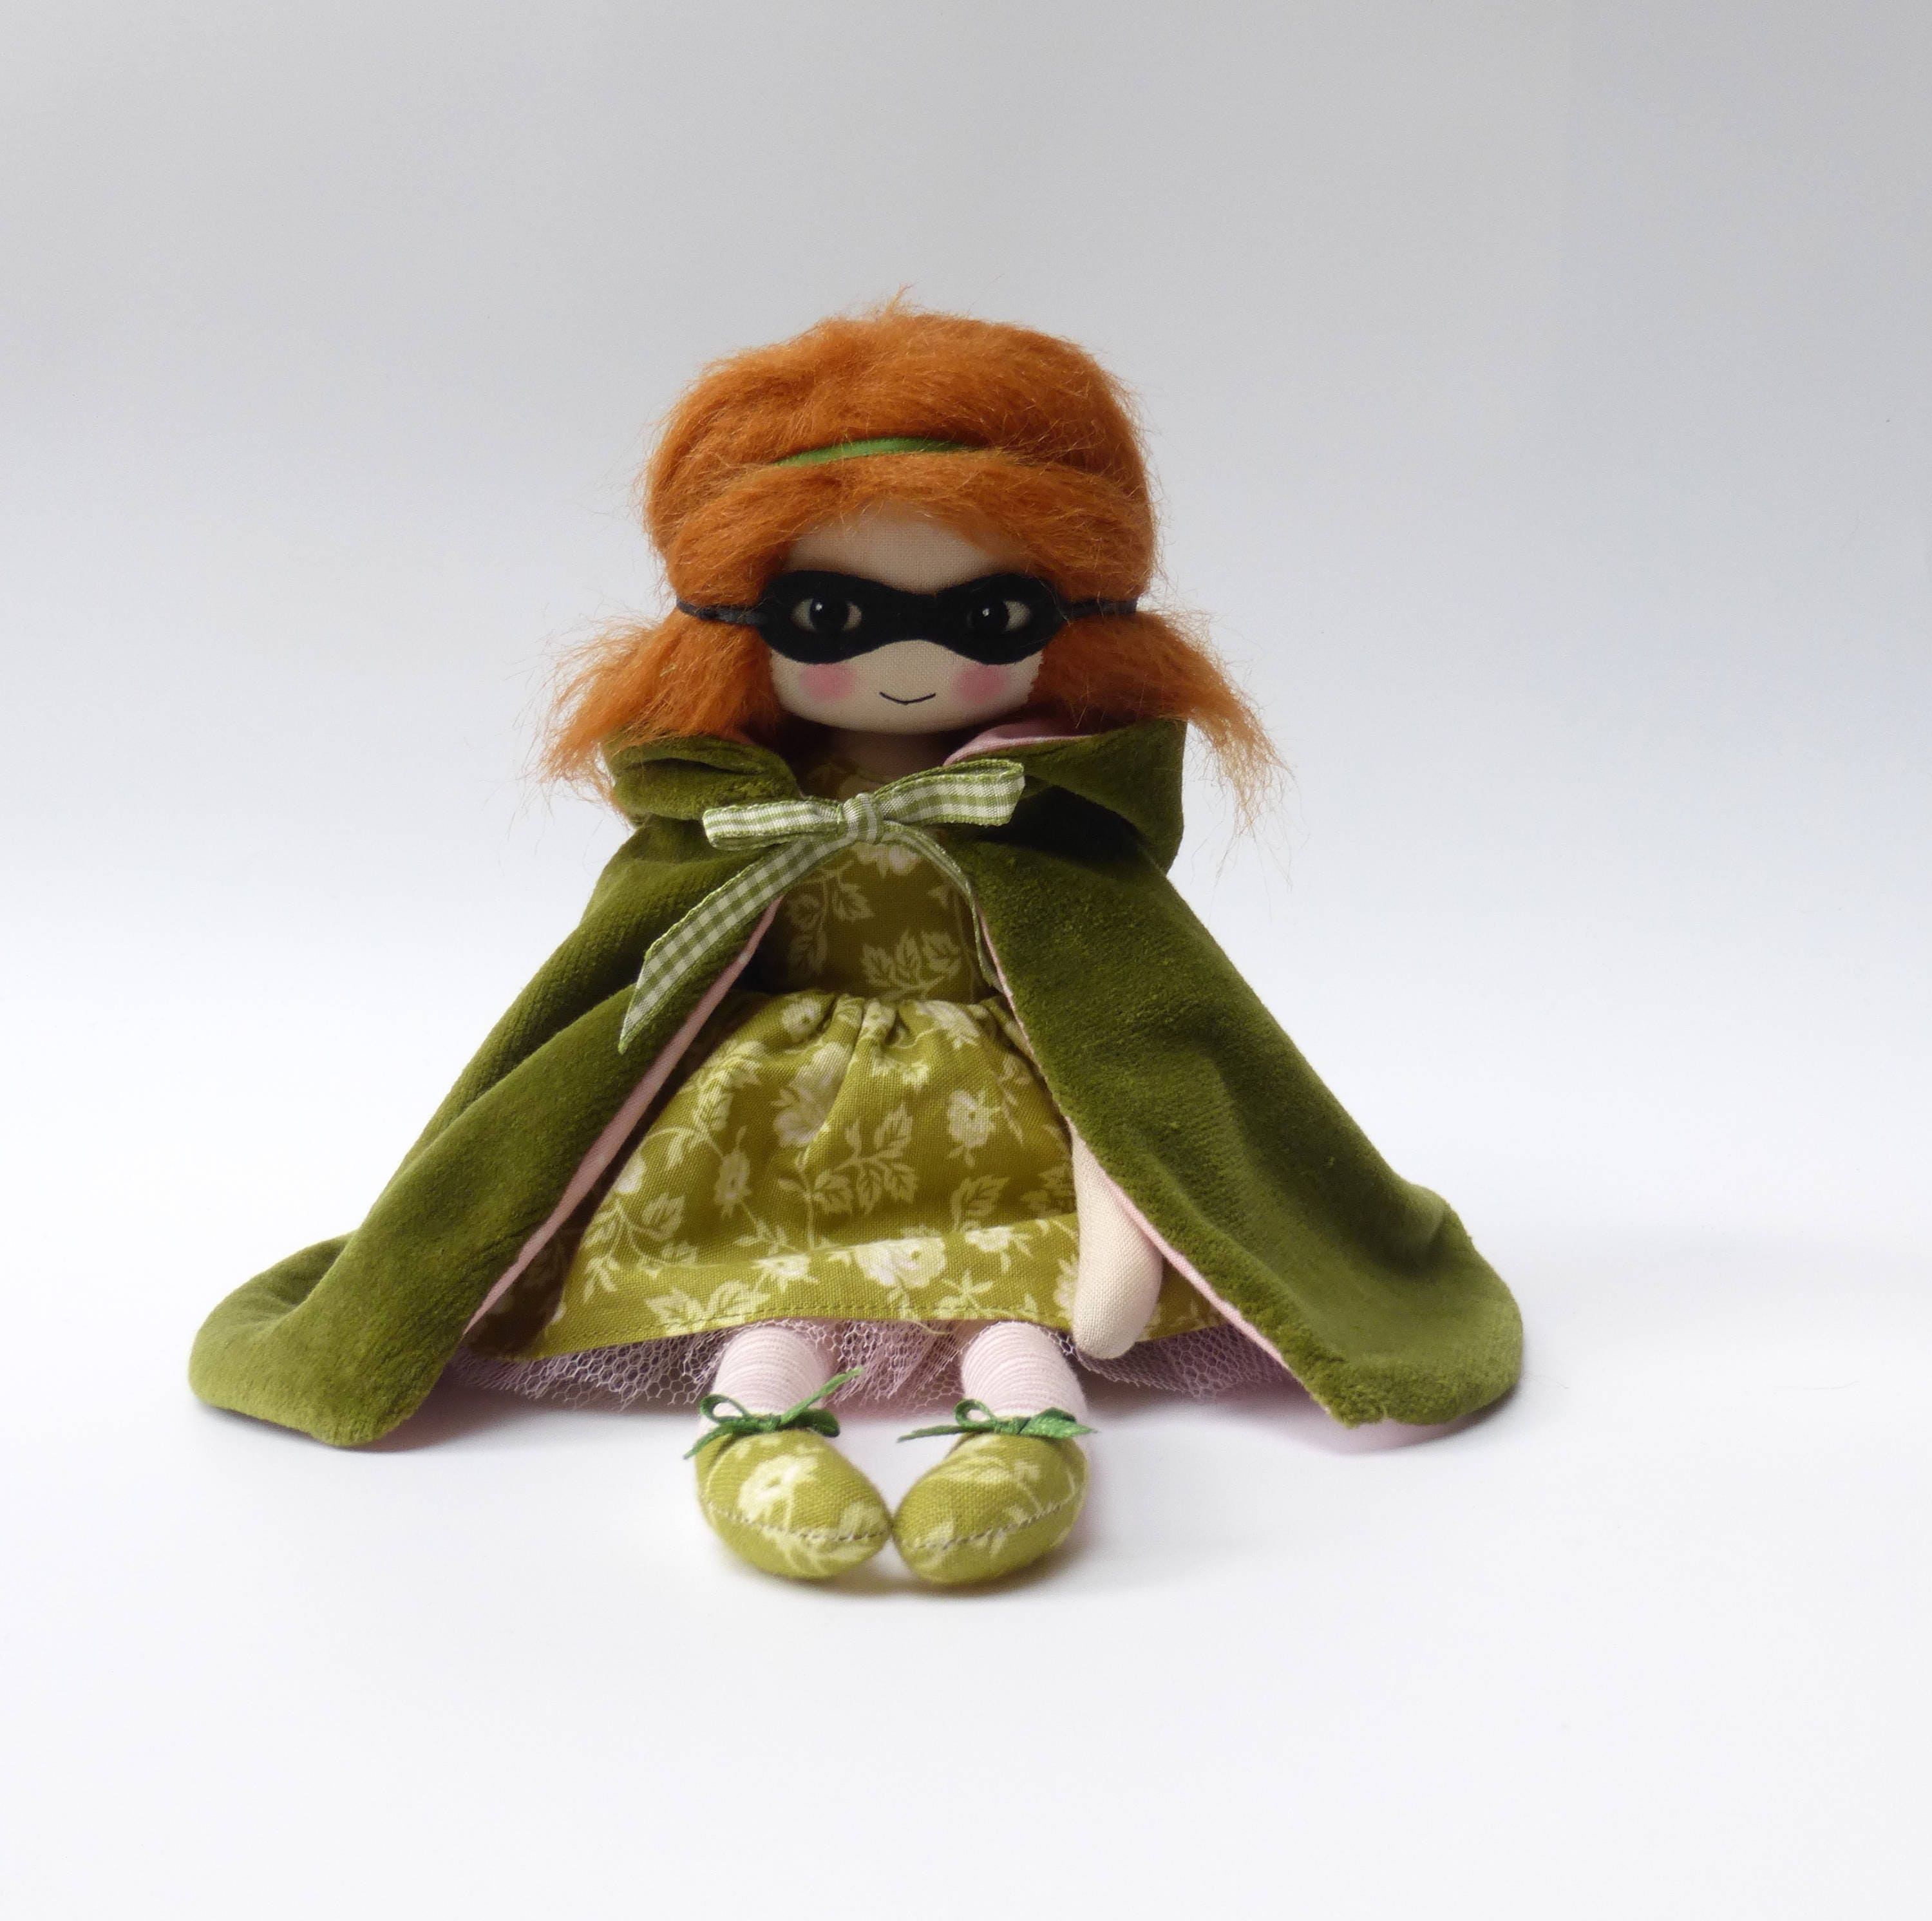 cloth doll art doll masque doll mysterious girl doll in green cloak unique gift gifts for her mothers day gift